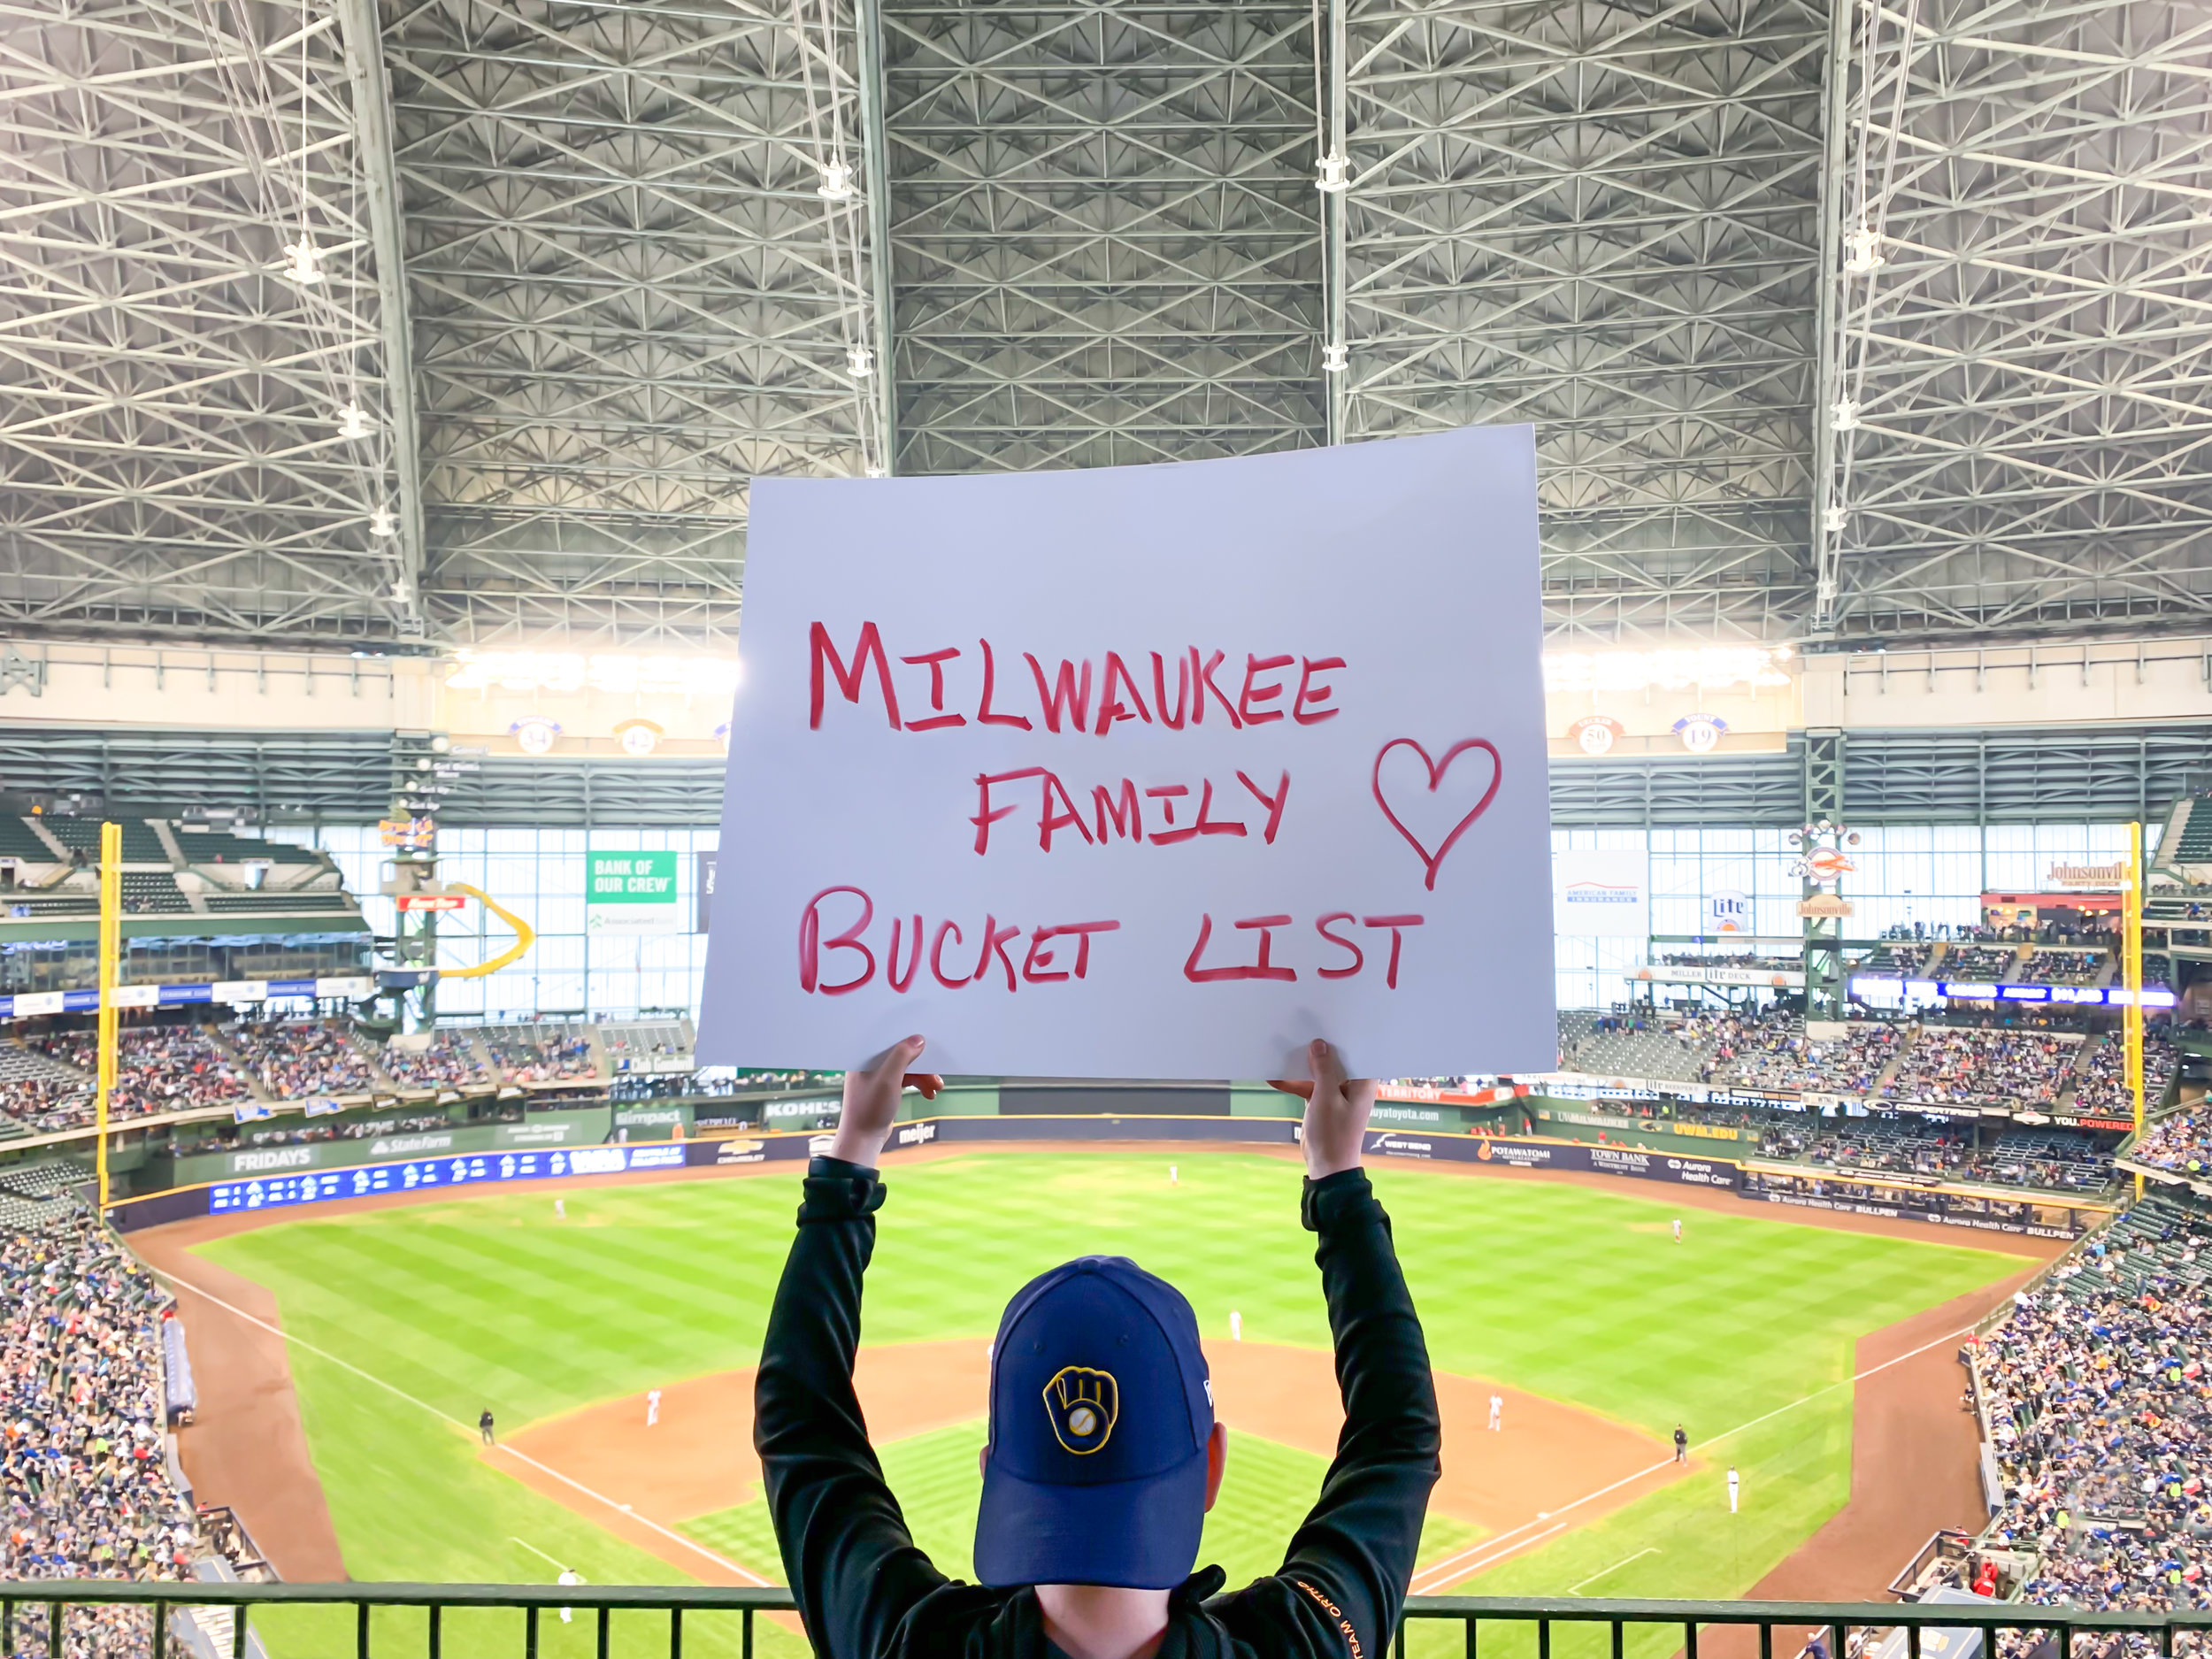 Milwaukee Family Bucket List - We're going to crush it this summer.